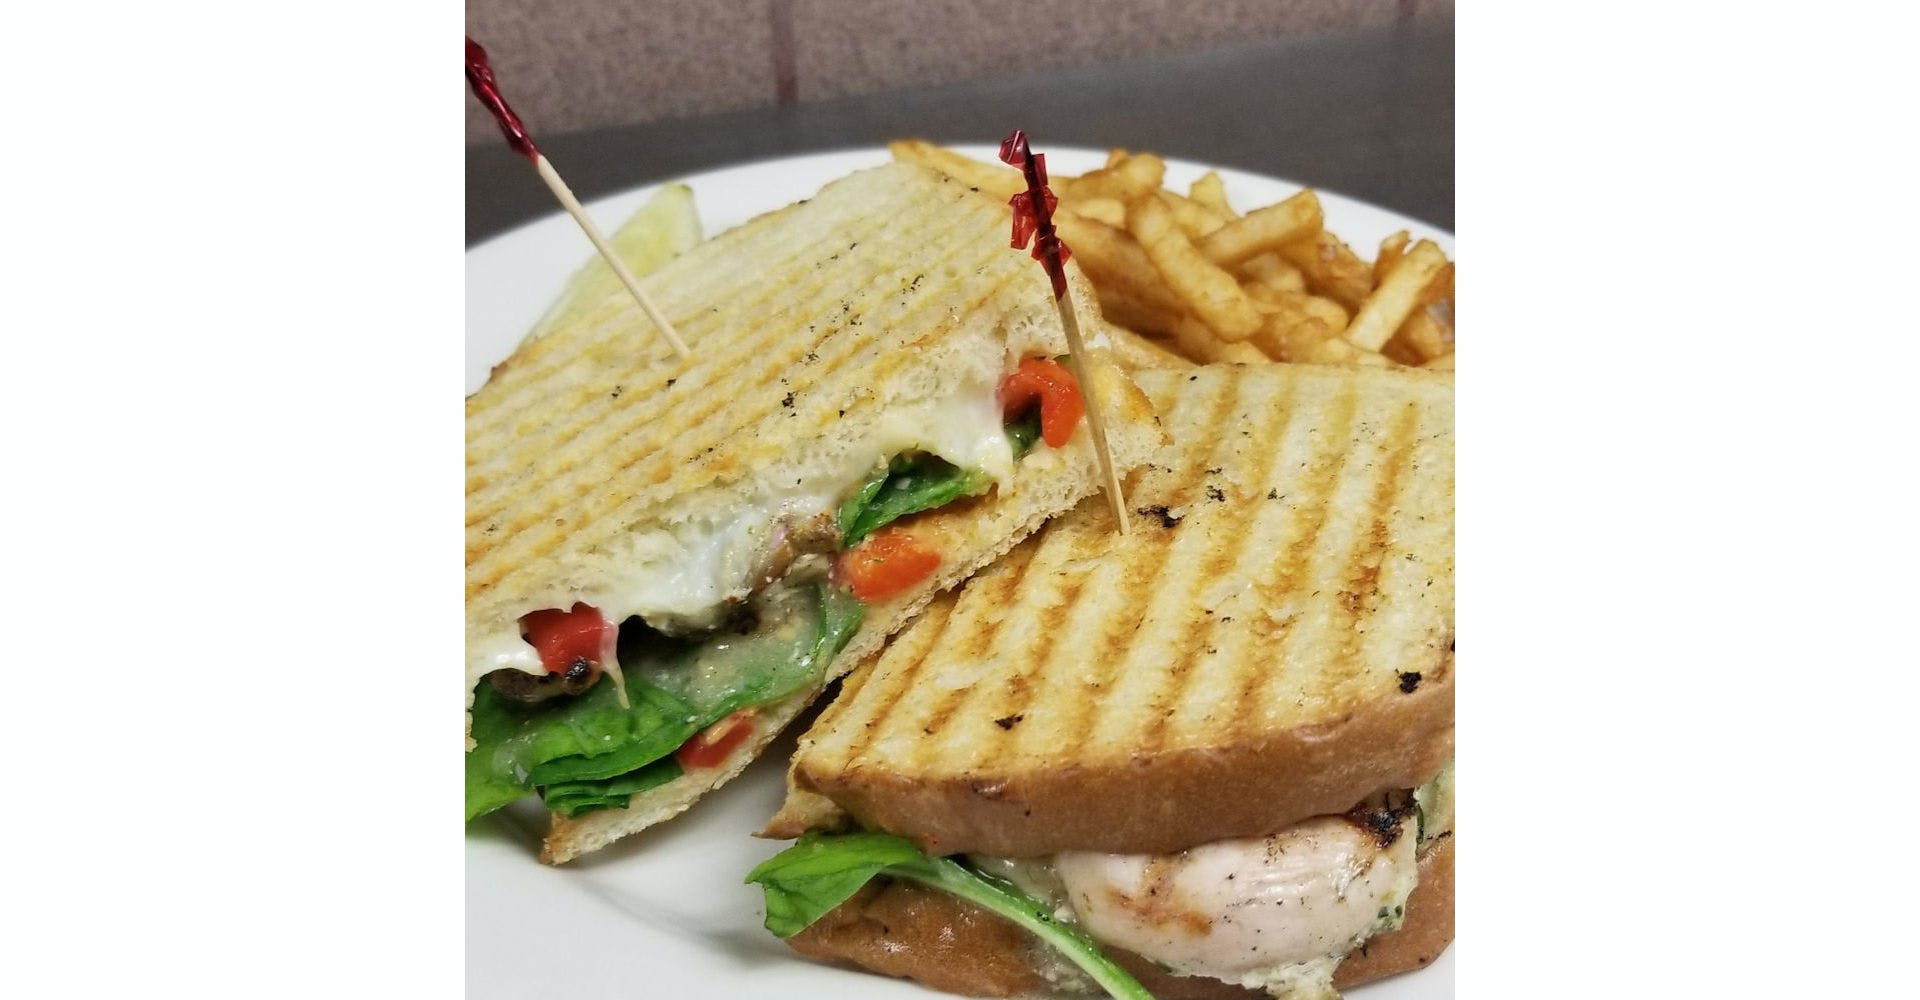 Tuscan Panini from Grazies Italian Grill in Stevens Point, WI